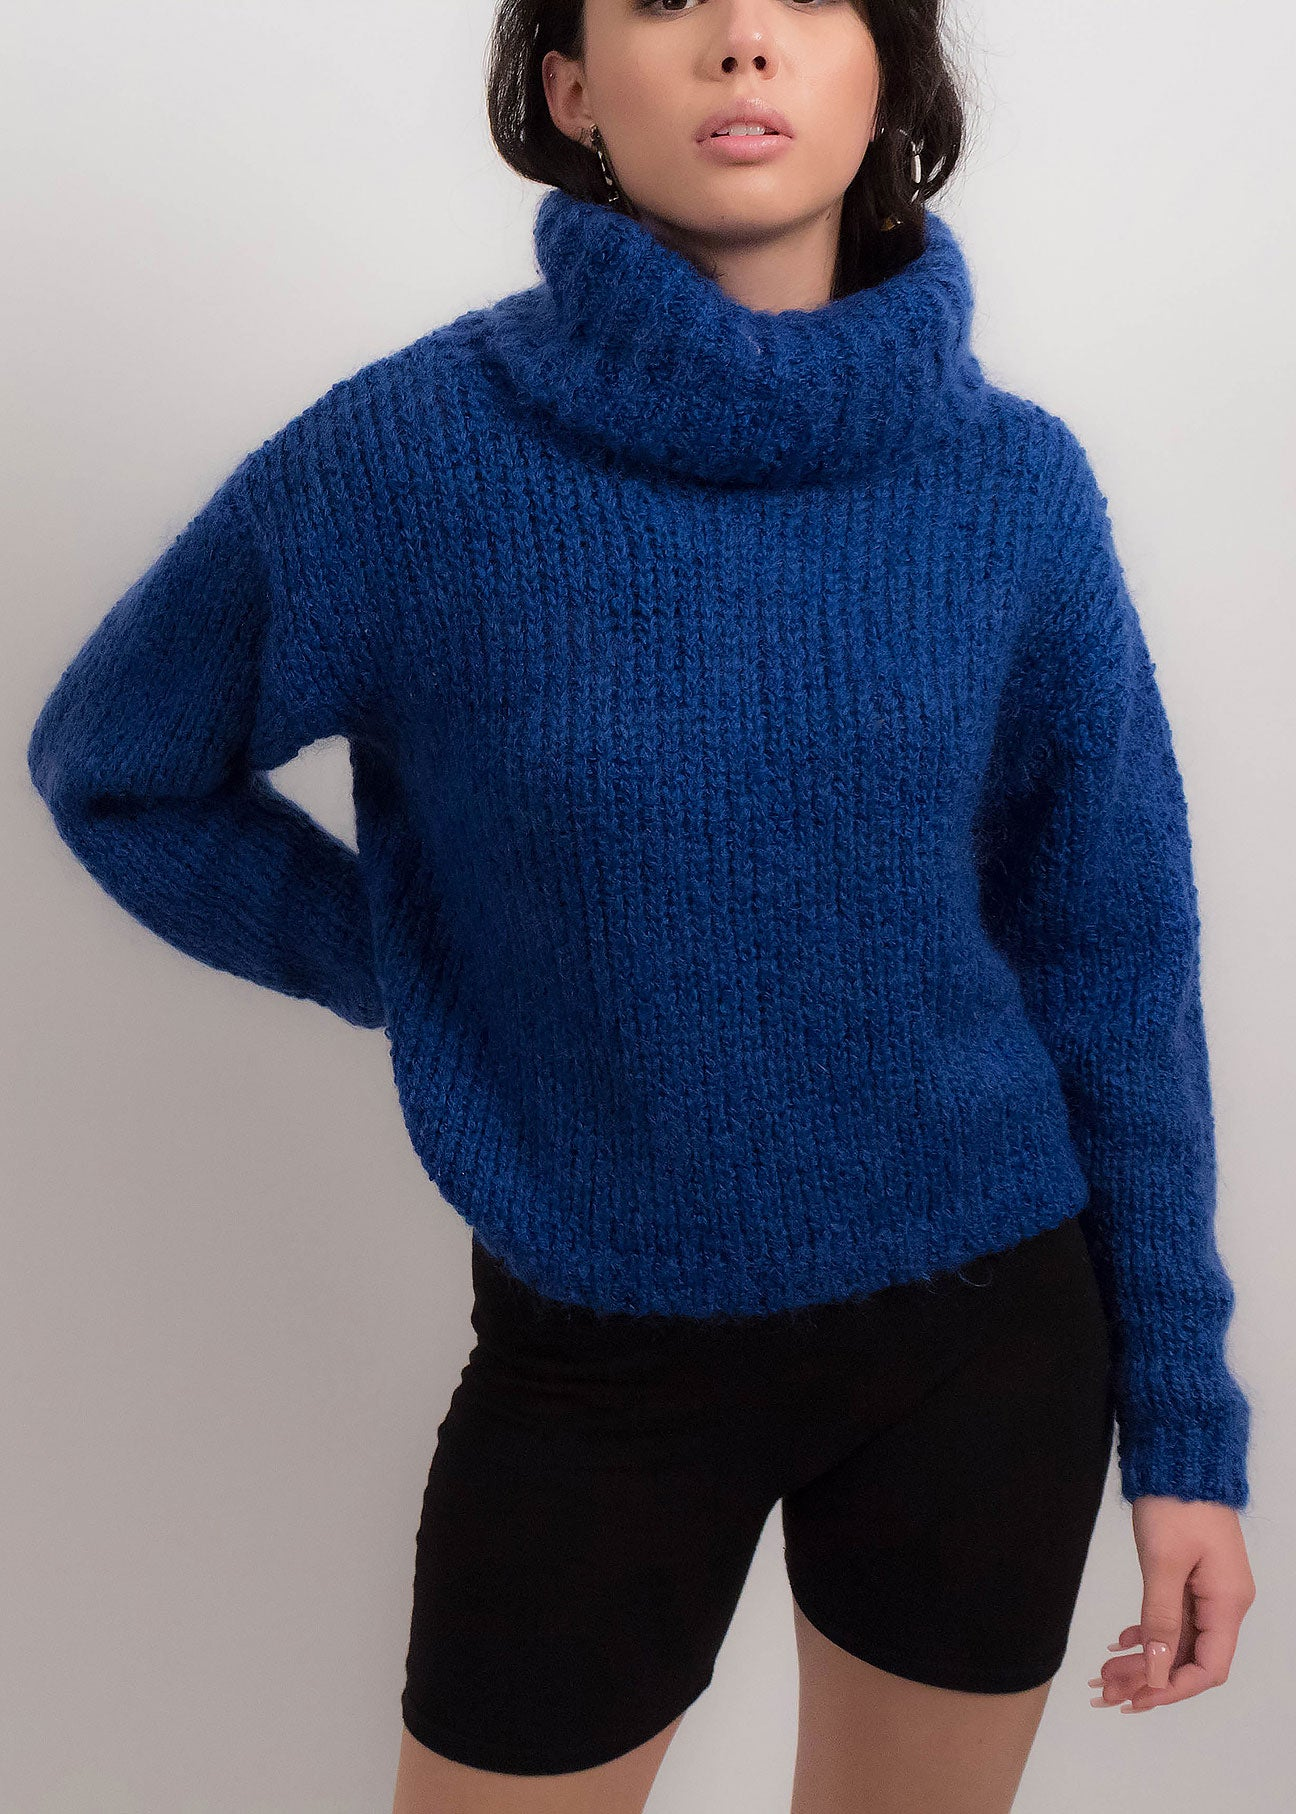 90s Cropped Mohair Sweater